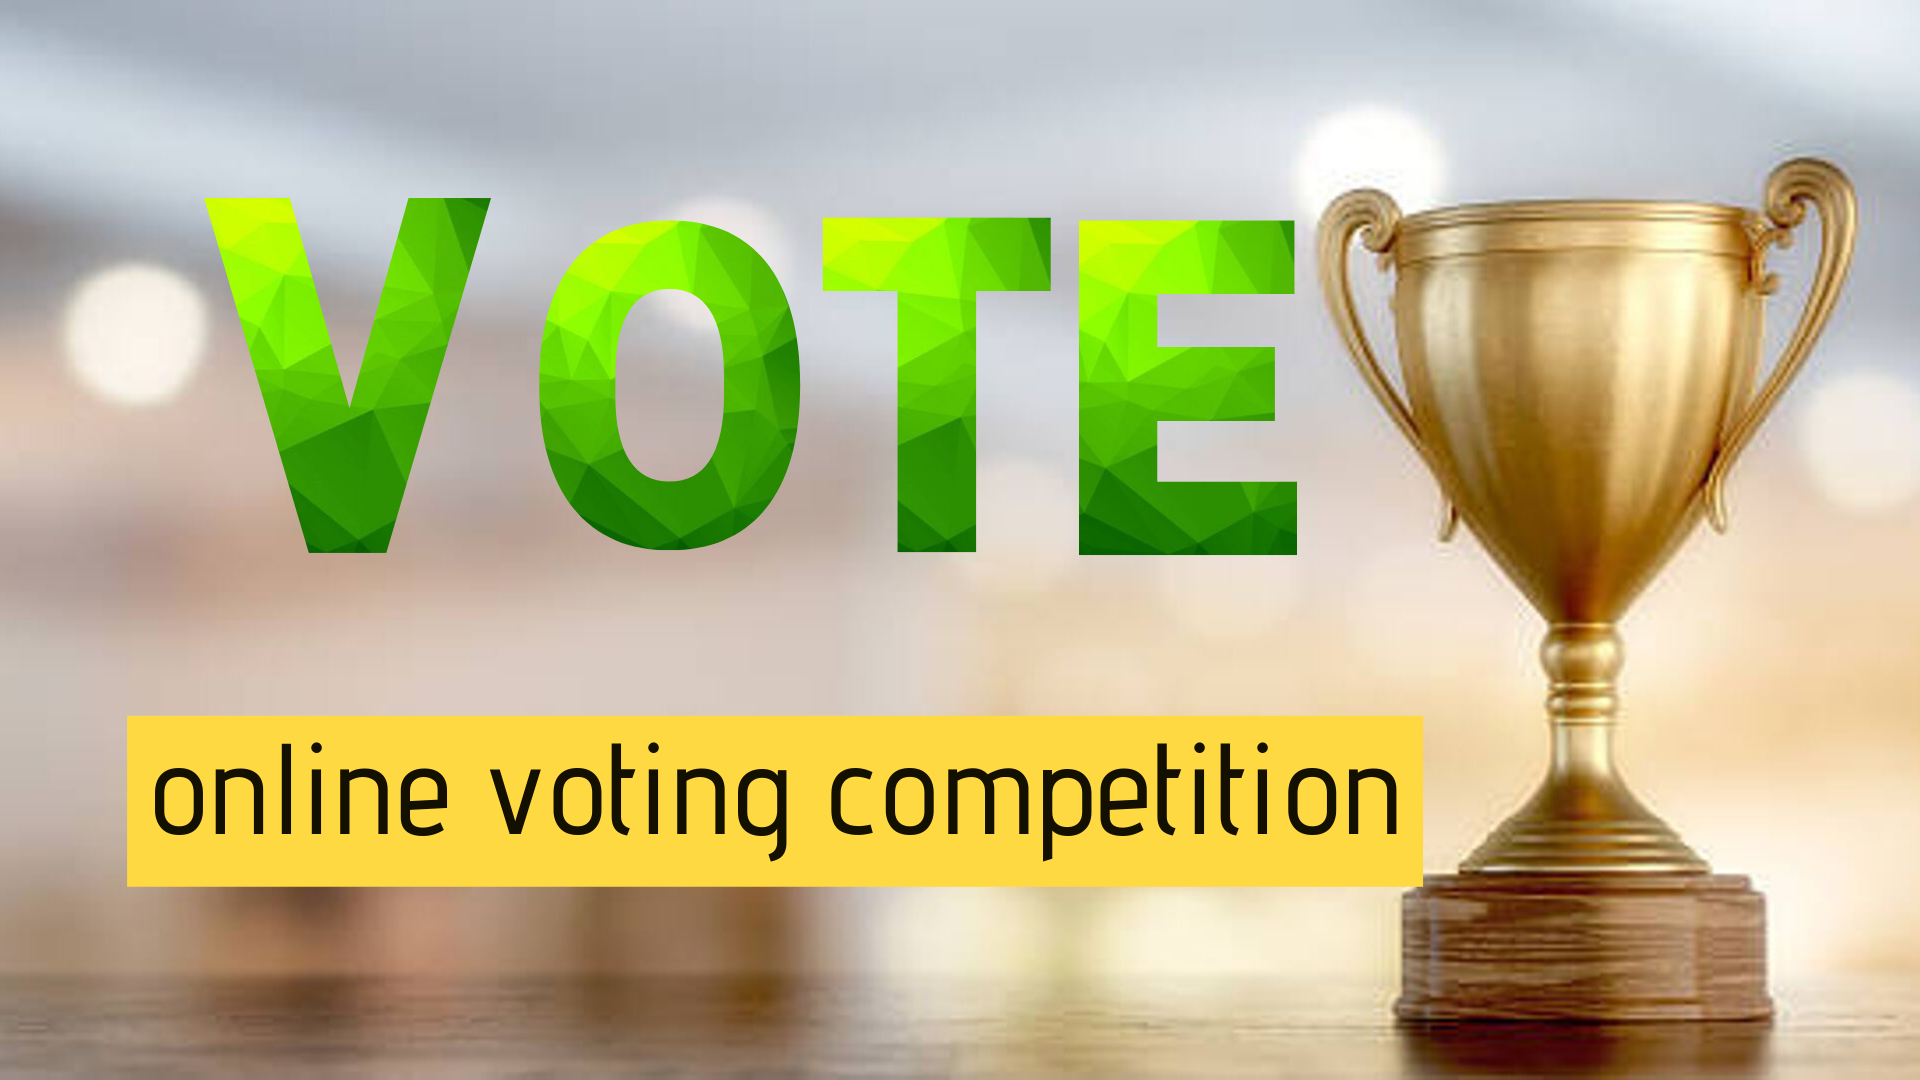 Collect 1000+ Different and Unique IP Votes For Your Online Voting Contest Entry for 40